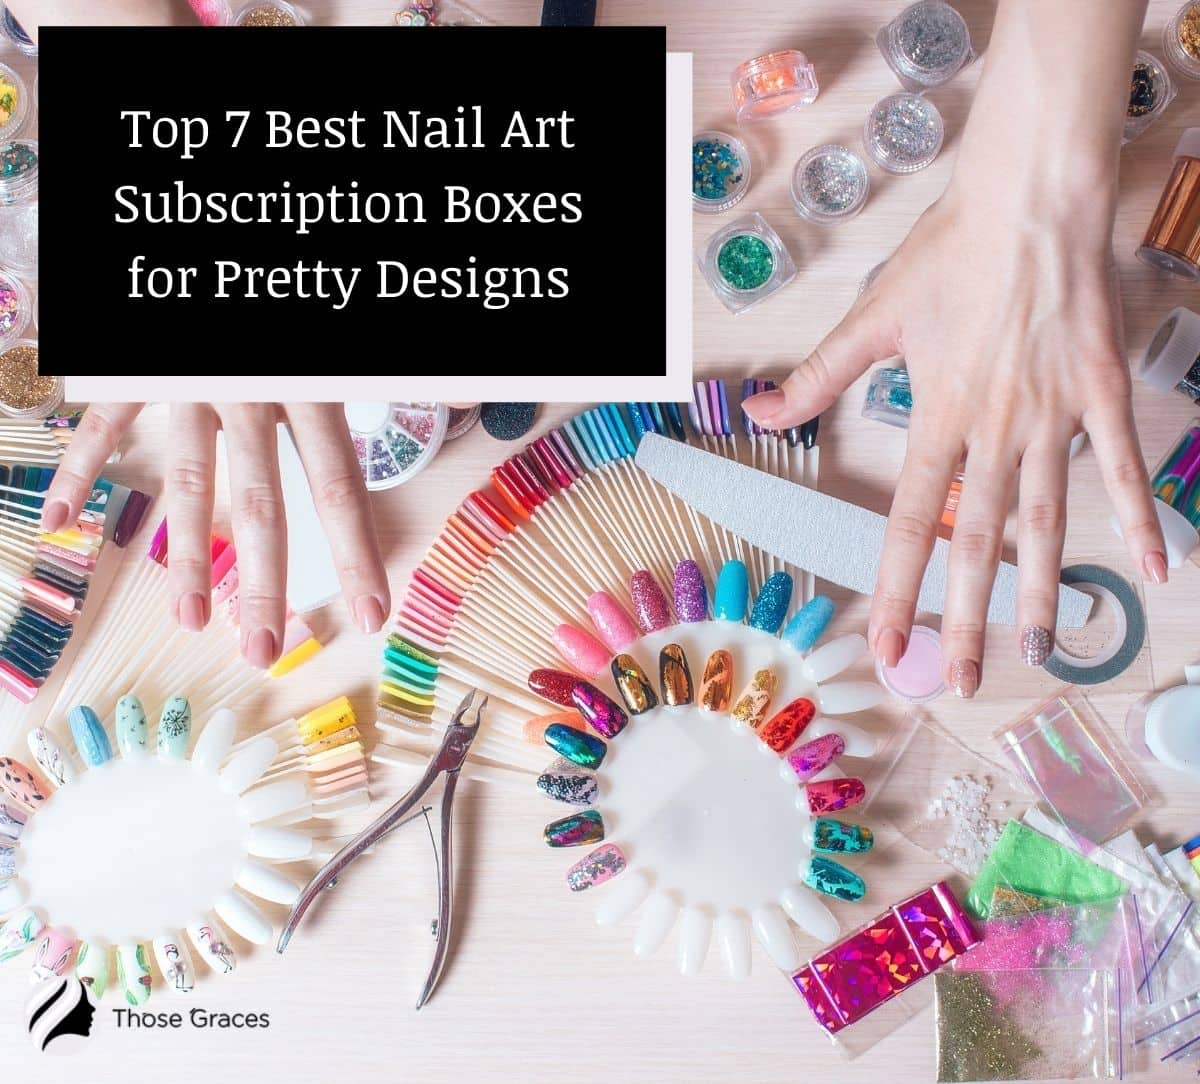 a hand surrounded by several nail art materials from nail art subscription boxes